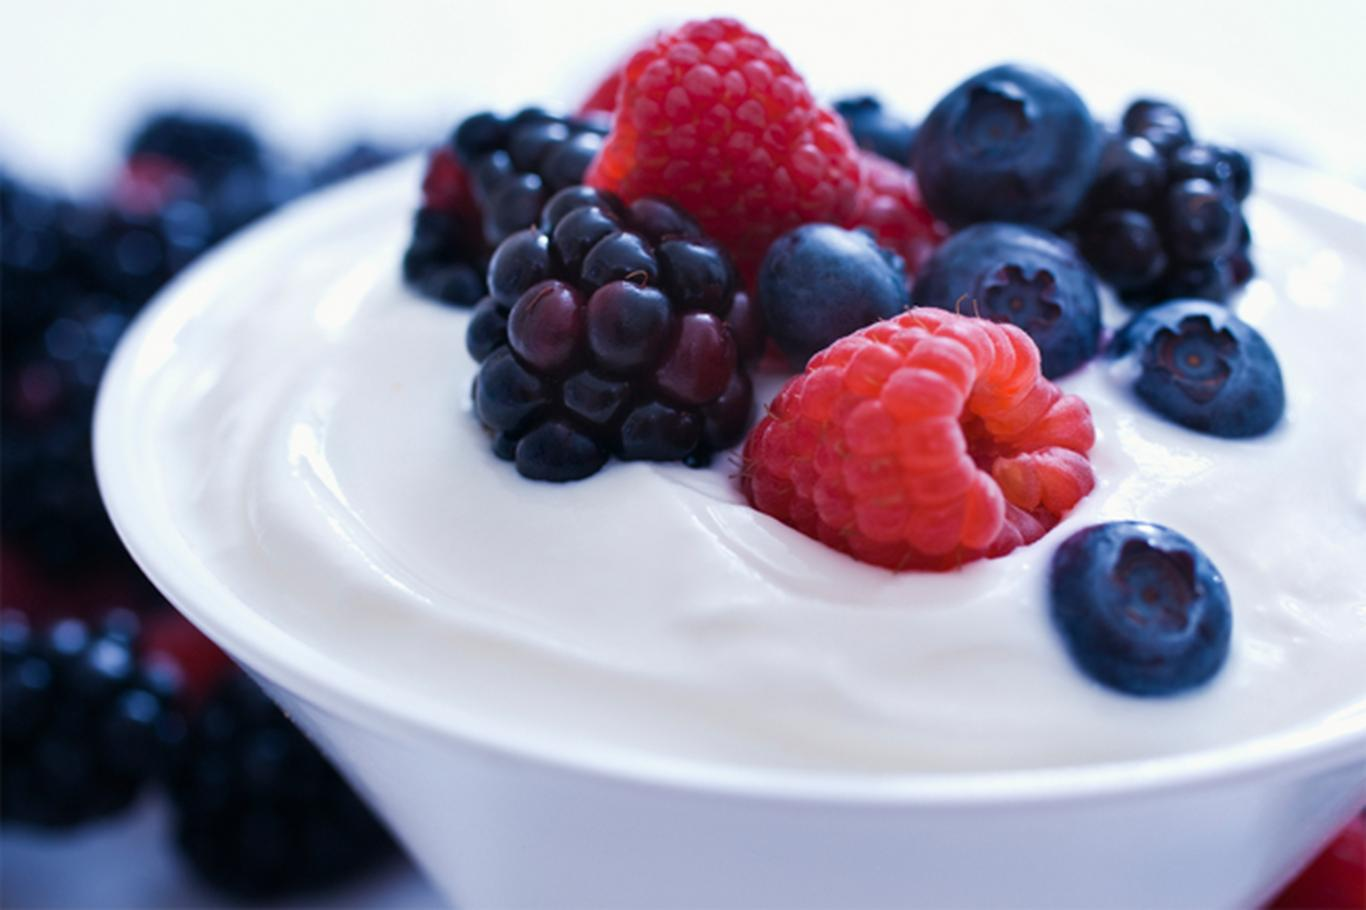 Greek yogurt contains twice the amount of protein as regular yogurt. Top with berries for antioxidants.